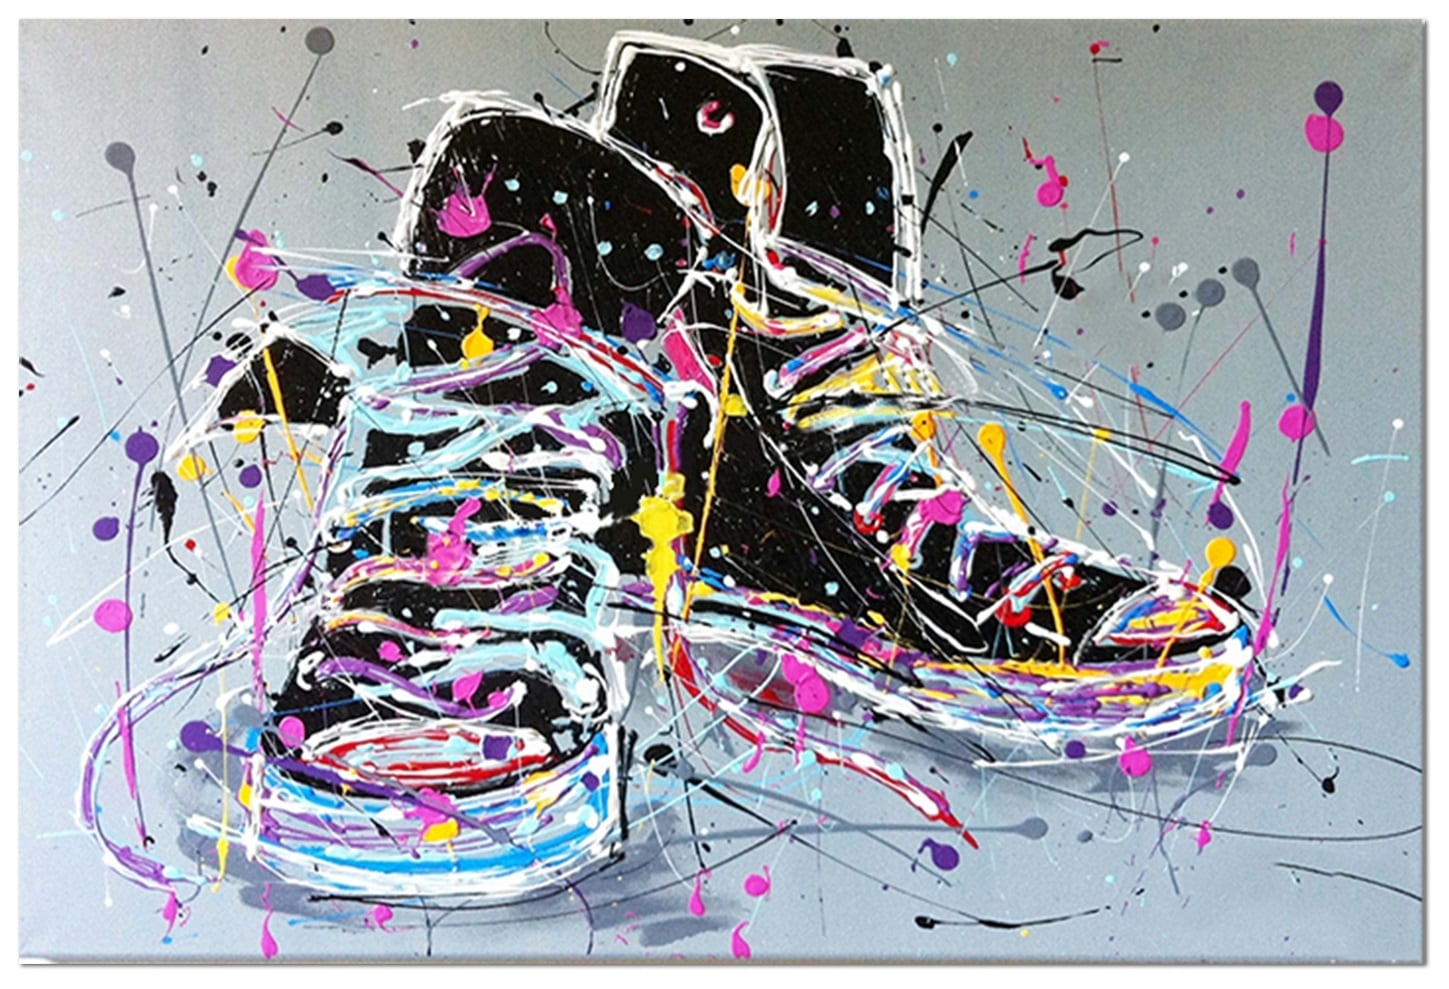 Design sneakers oil painting on canvas for art lovers